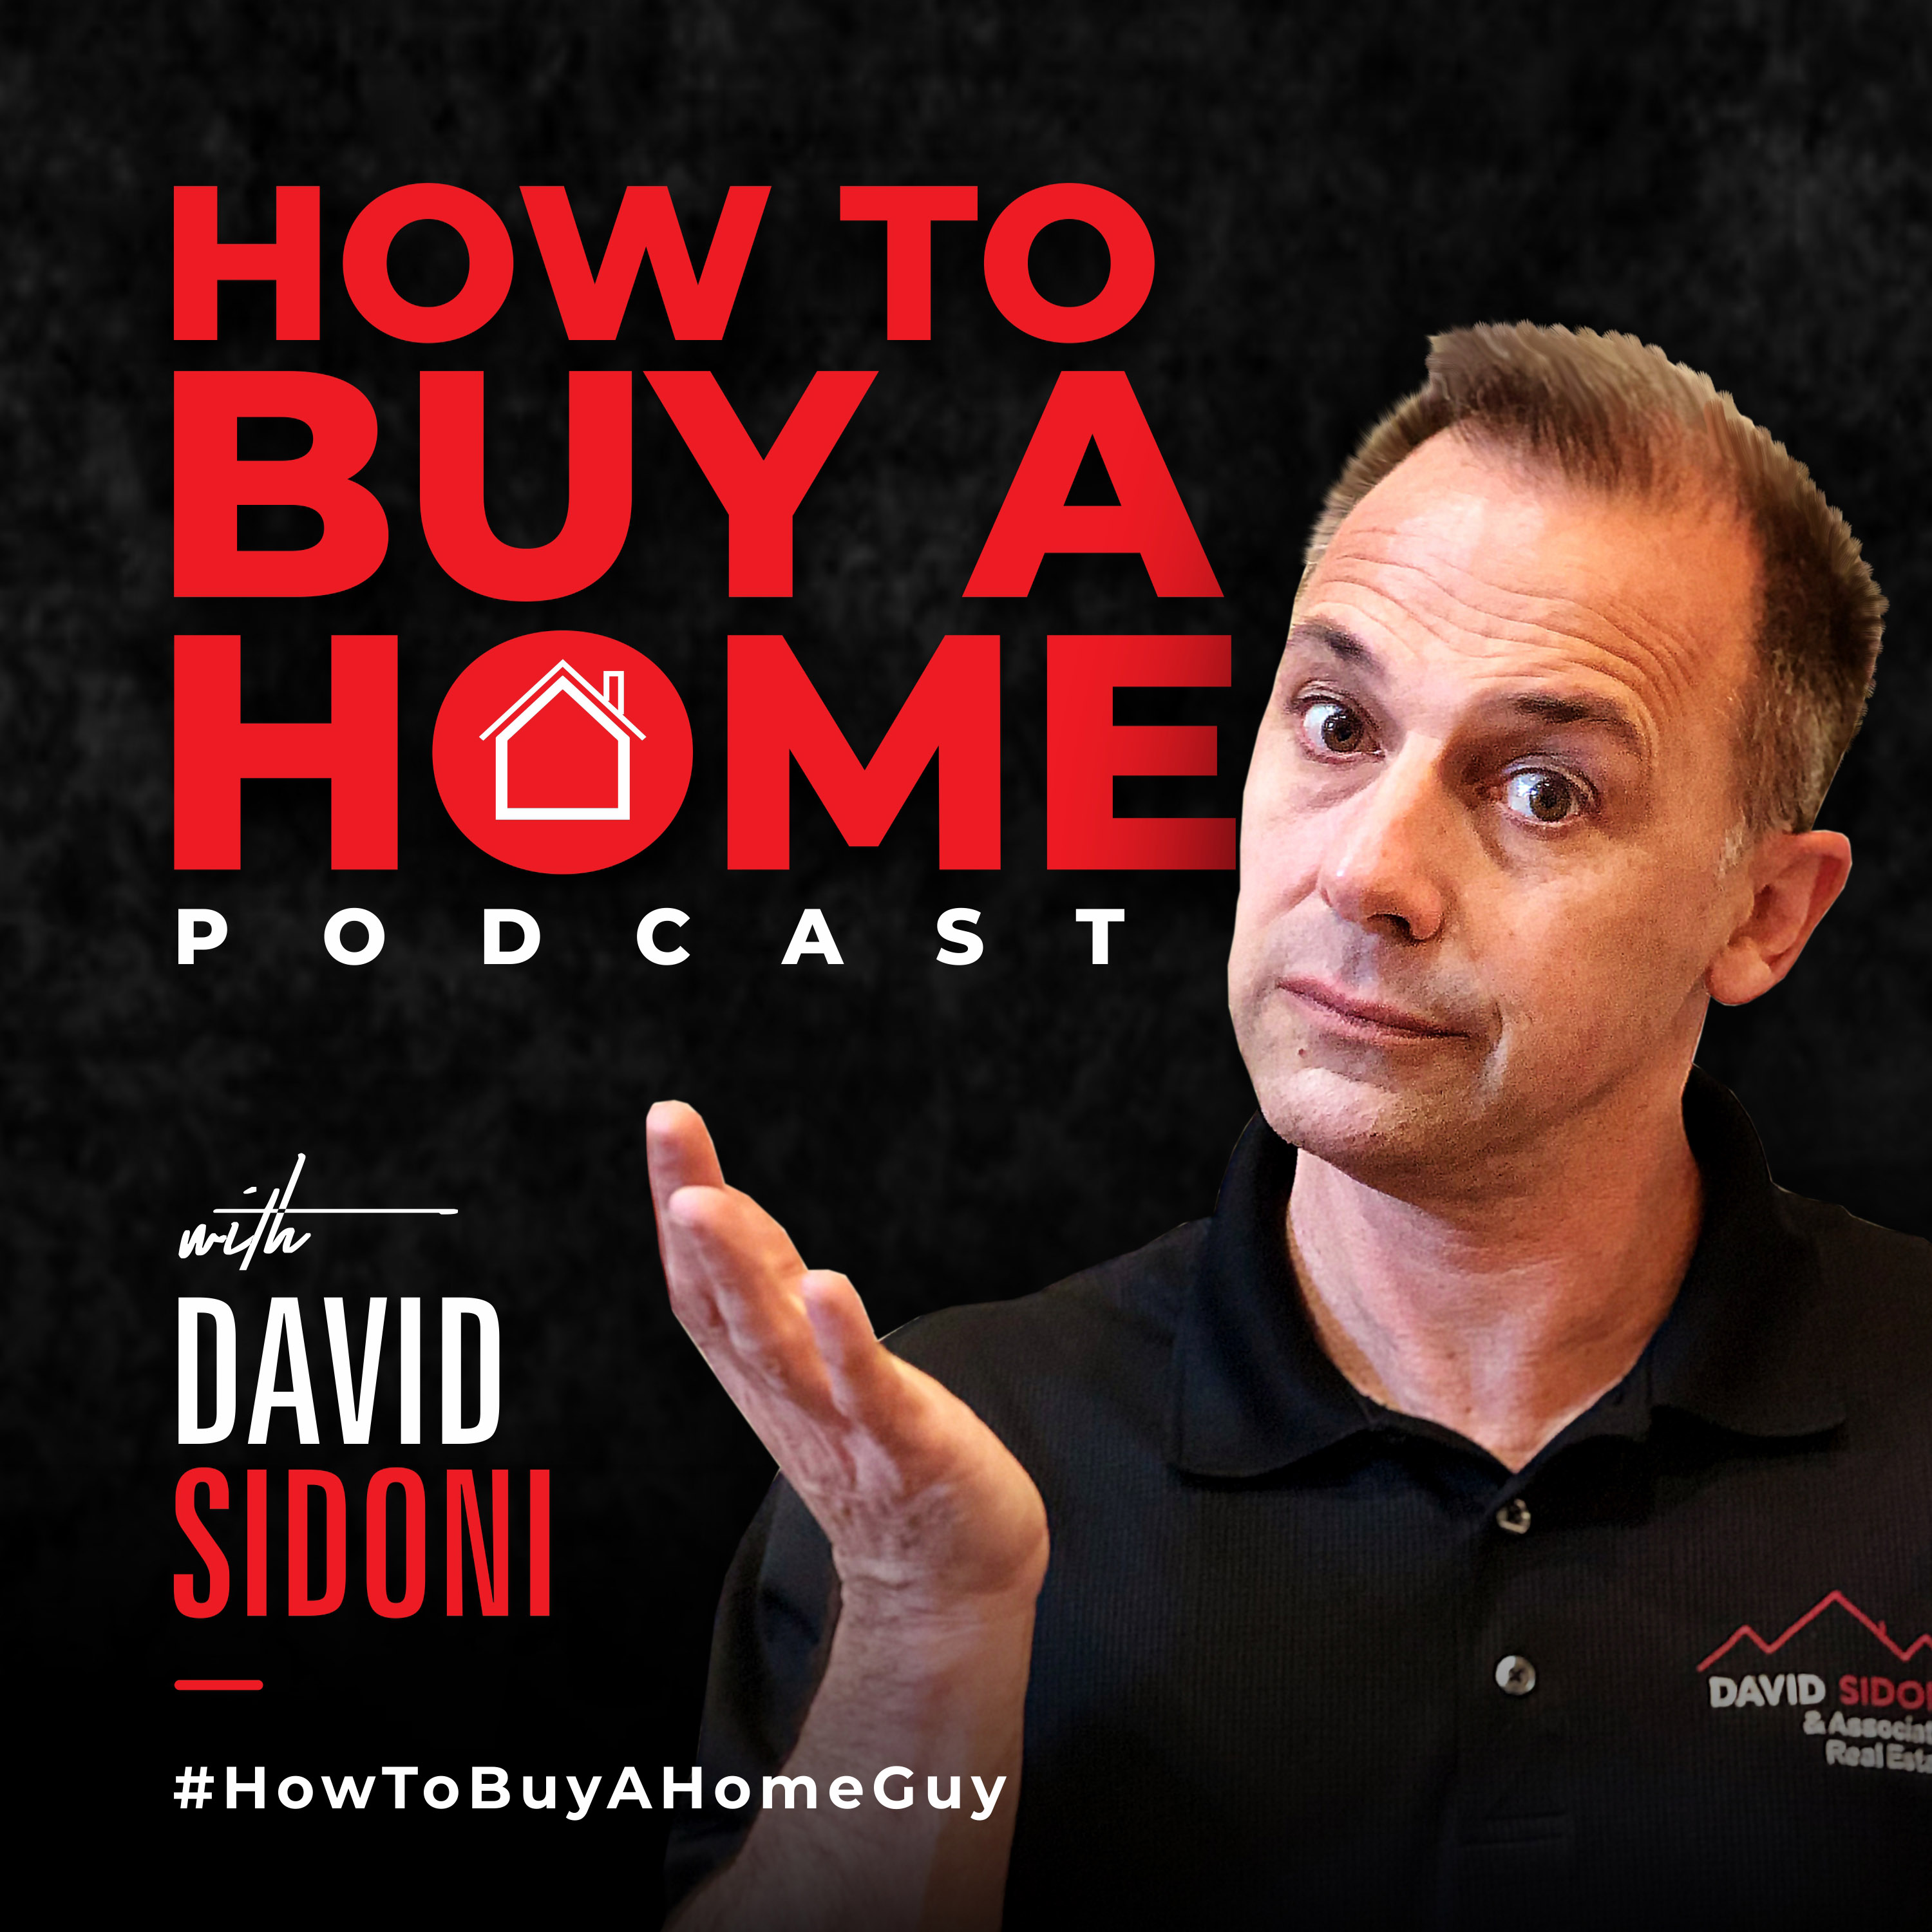 How to Buy a Home podcast show image